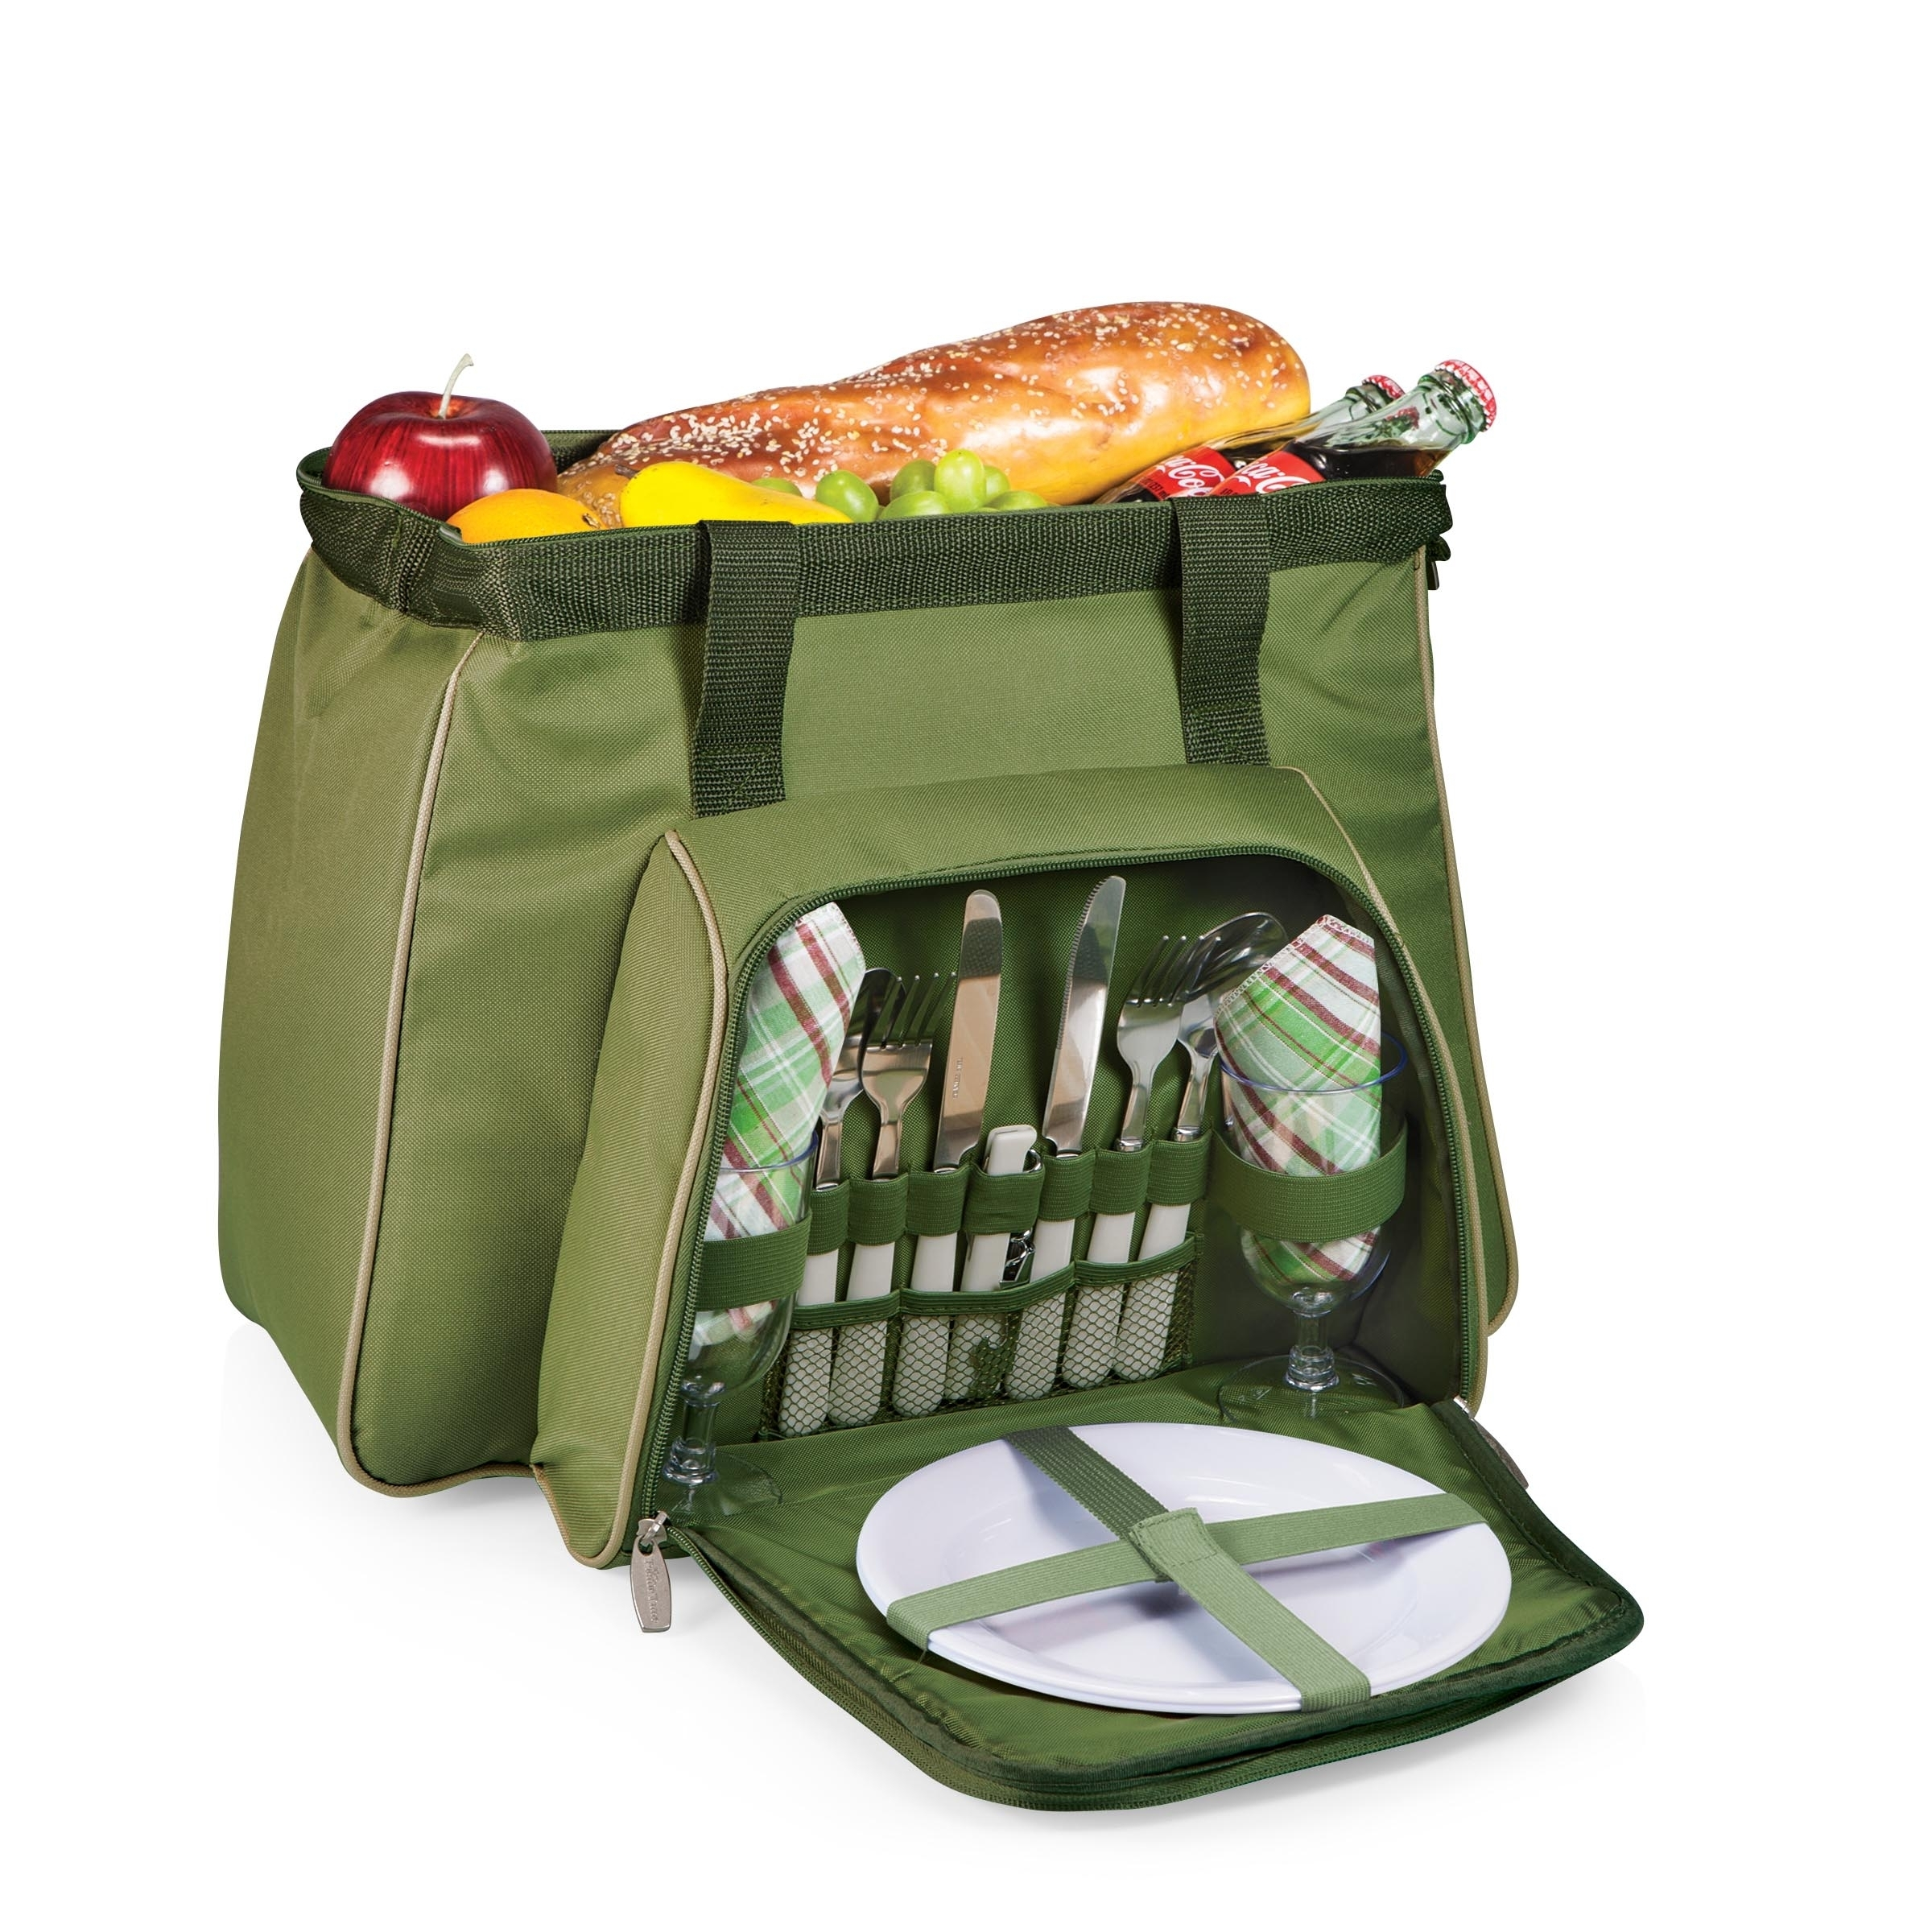 Toluca Picnic Insulated Cooler Set